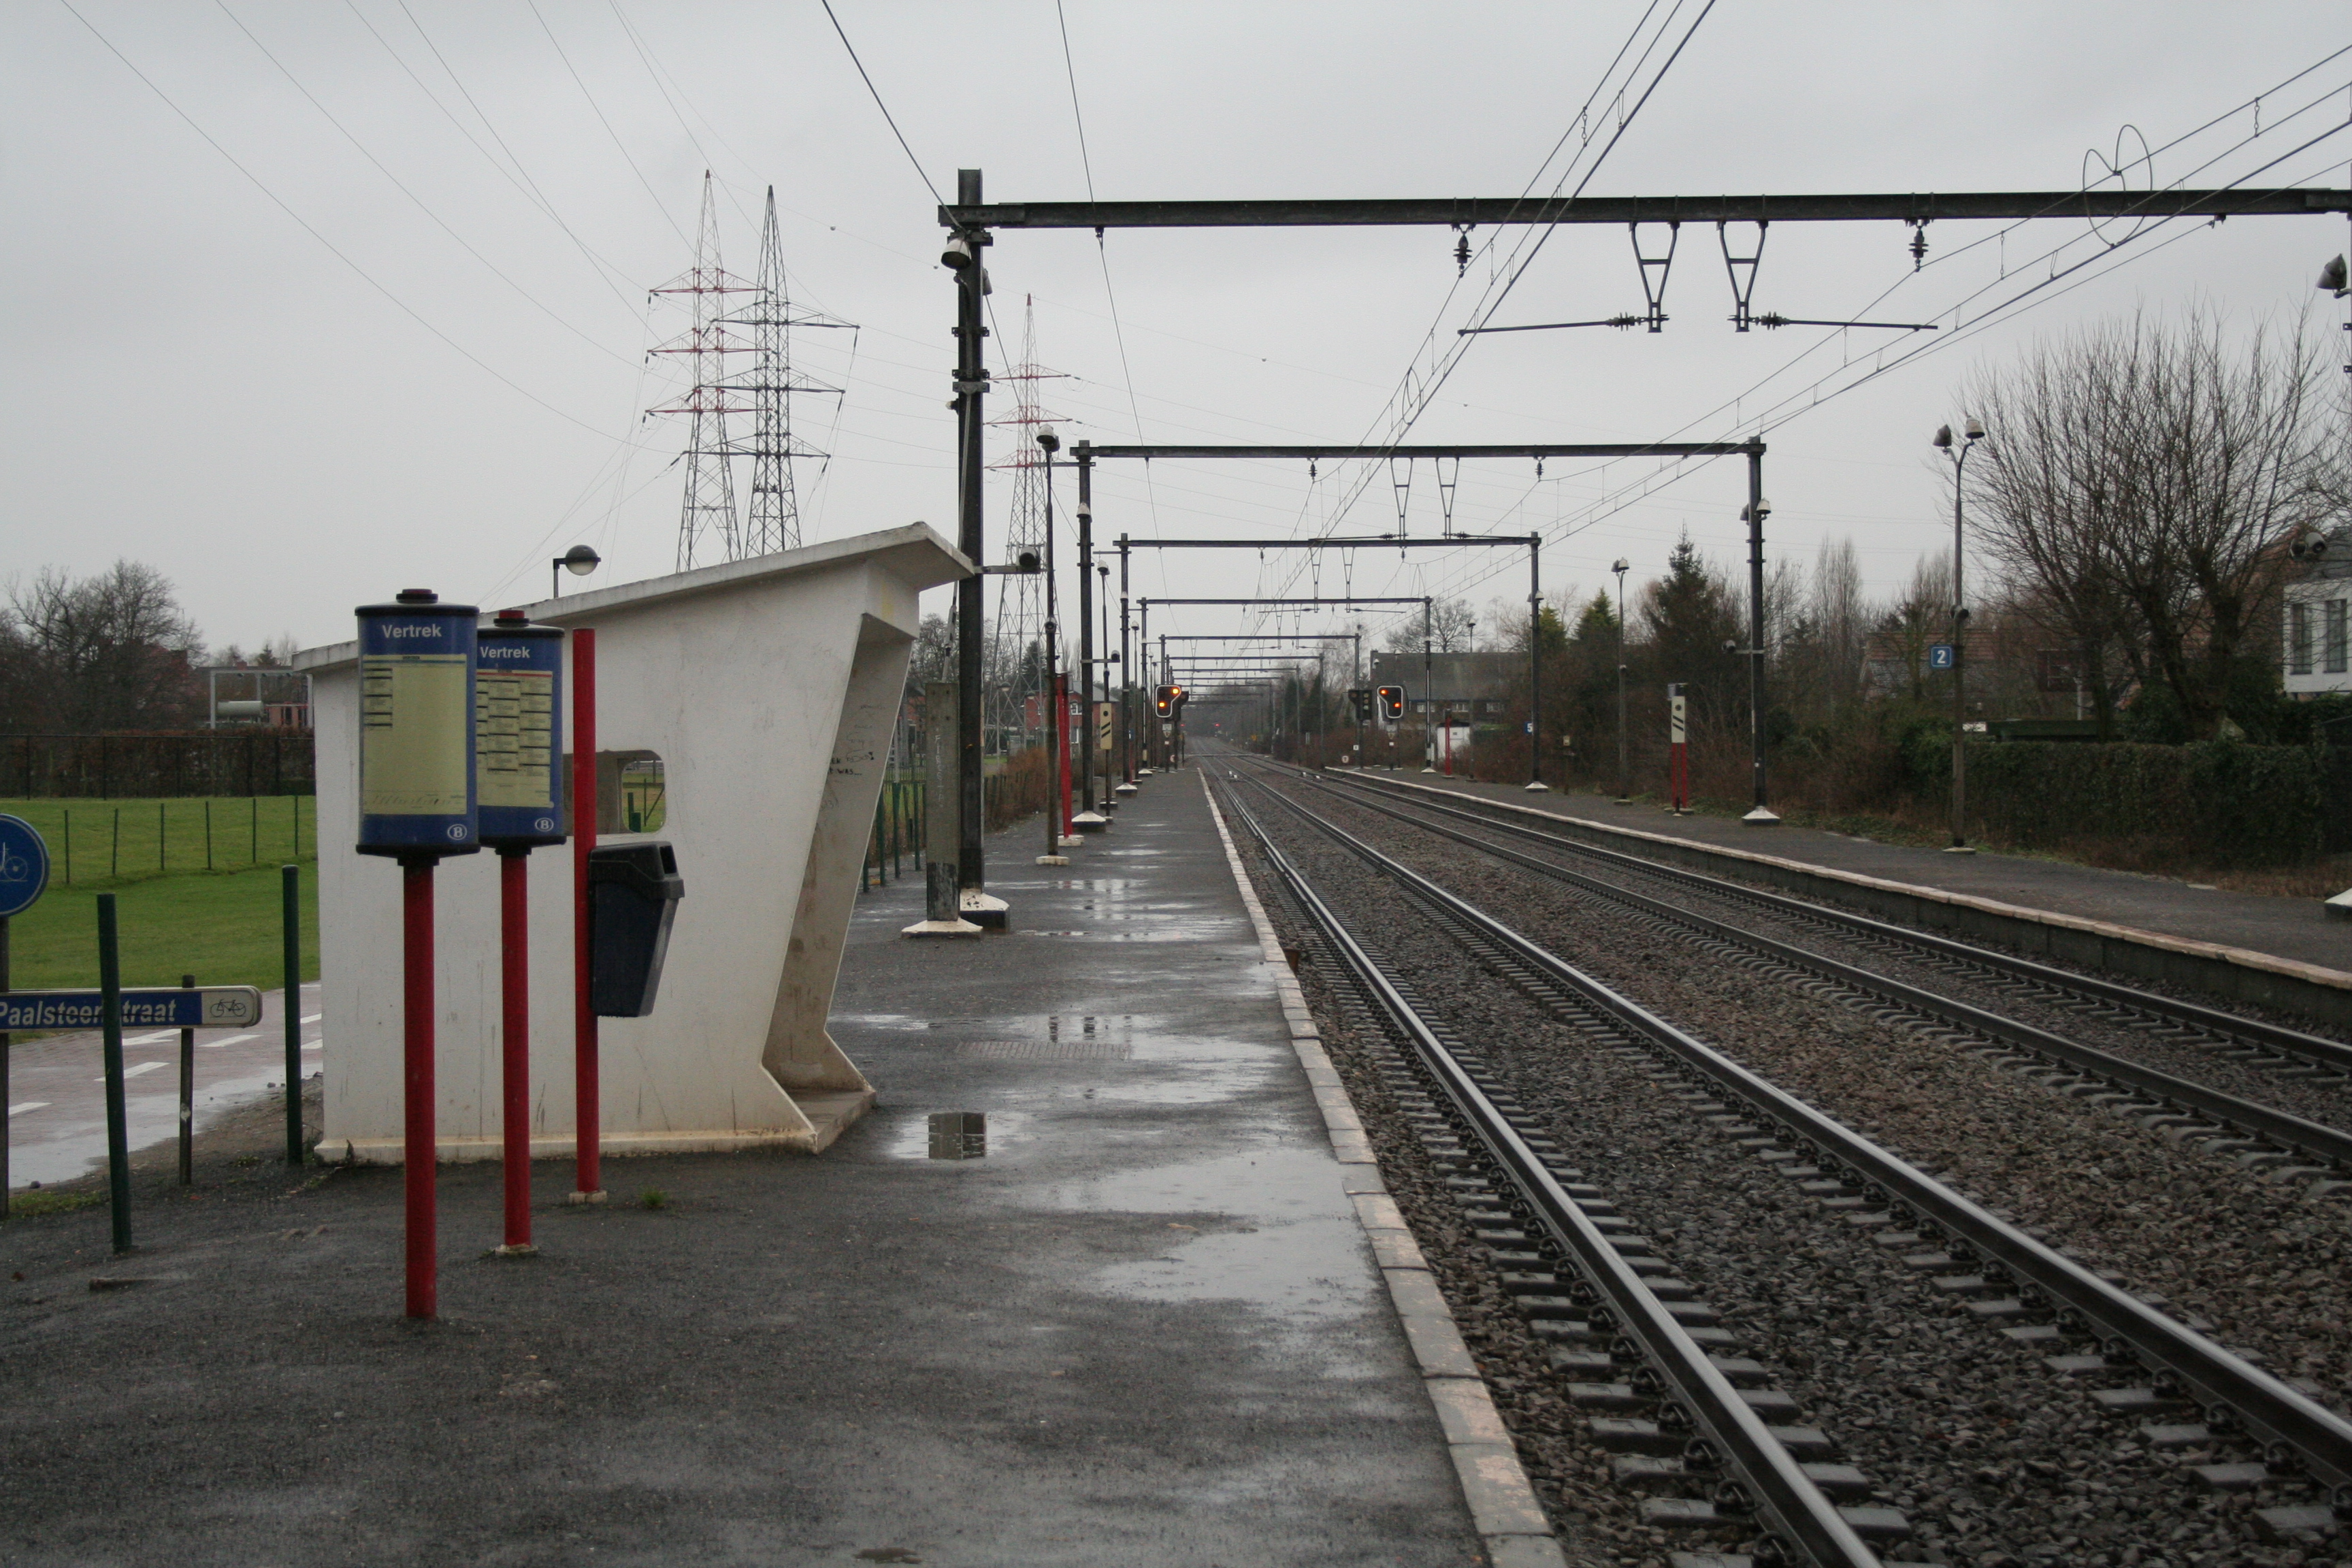 The Hasselt-Kiewit train station is about a five-minute walk from Mobile Vikings' office.